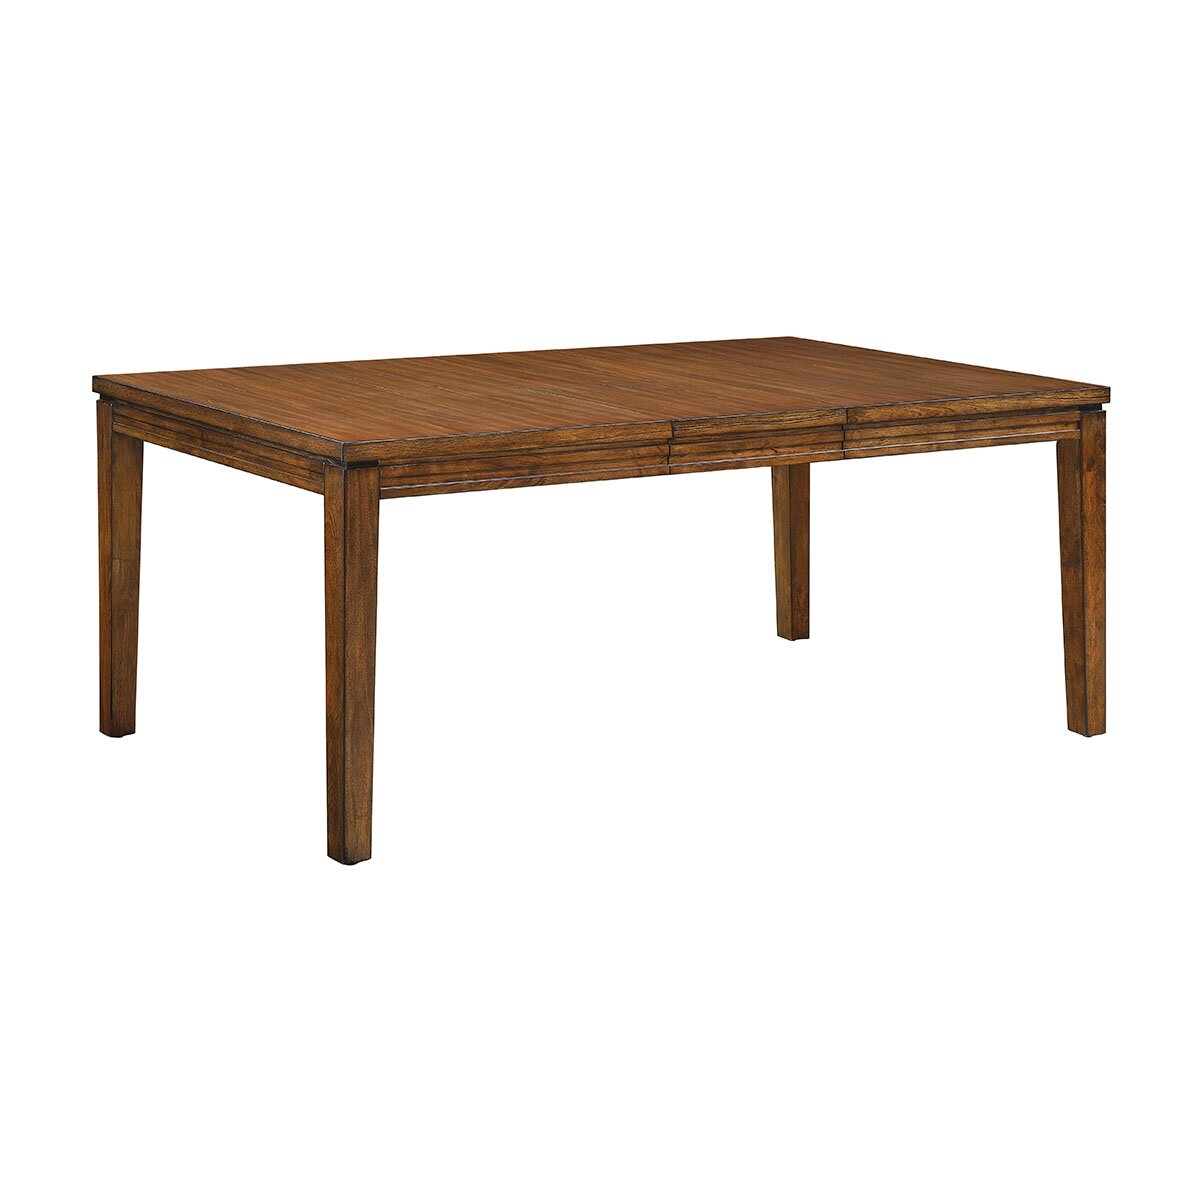 Loon Peak Highland Rim Extendable Dining Table Wayfairca : Highland Rim Extendable Dining Table LOON3780 from www.wayfair.ca size 1200 x 1200 jpeg 87kB